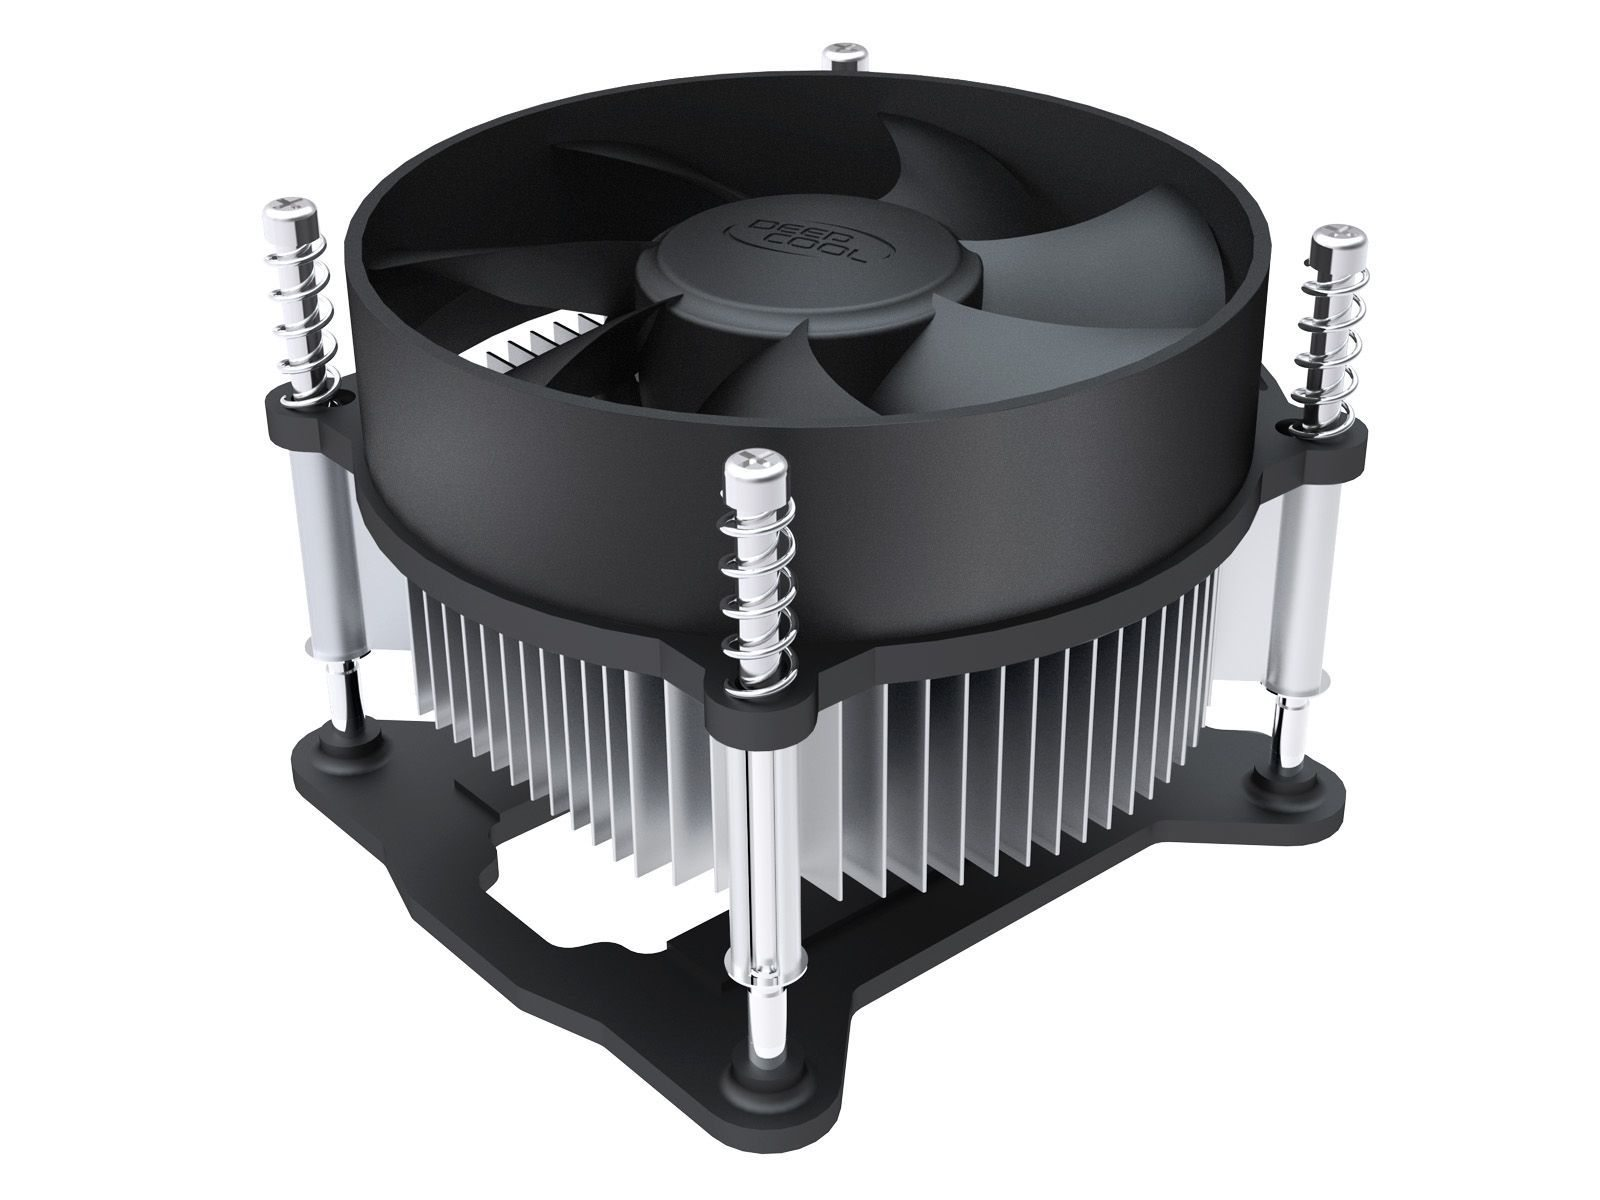 DeepCool CPU Cooler CK-11508 - LGA 1155/1156